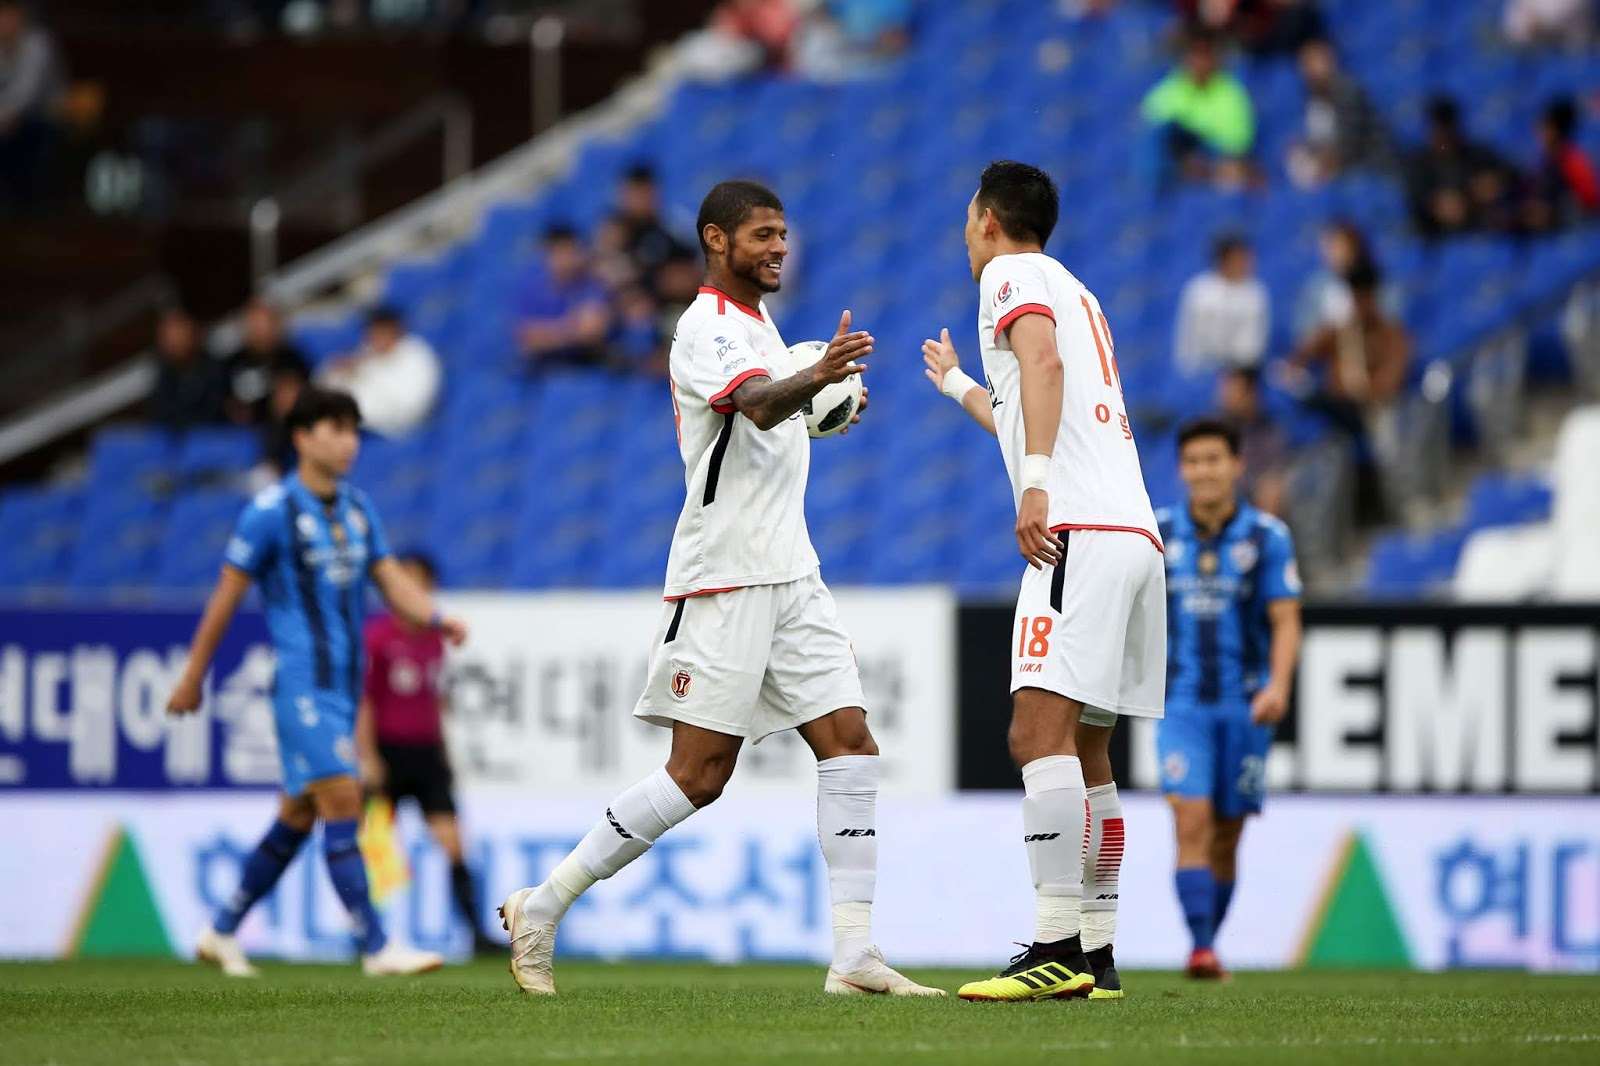 K League 2 Preview: Jeju United vs Jeonnam Dragons